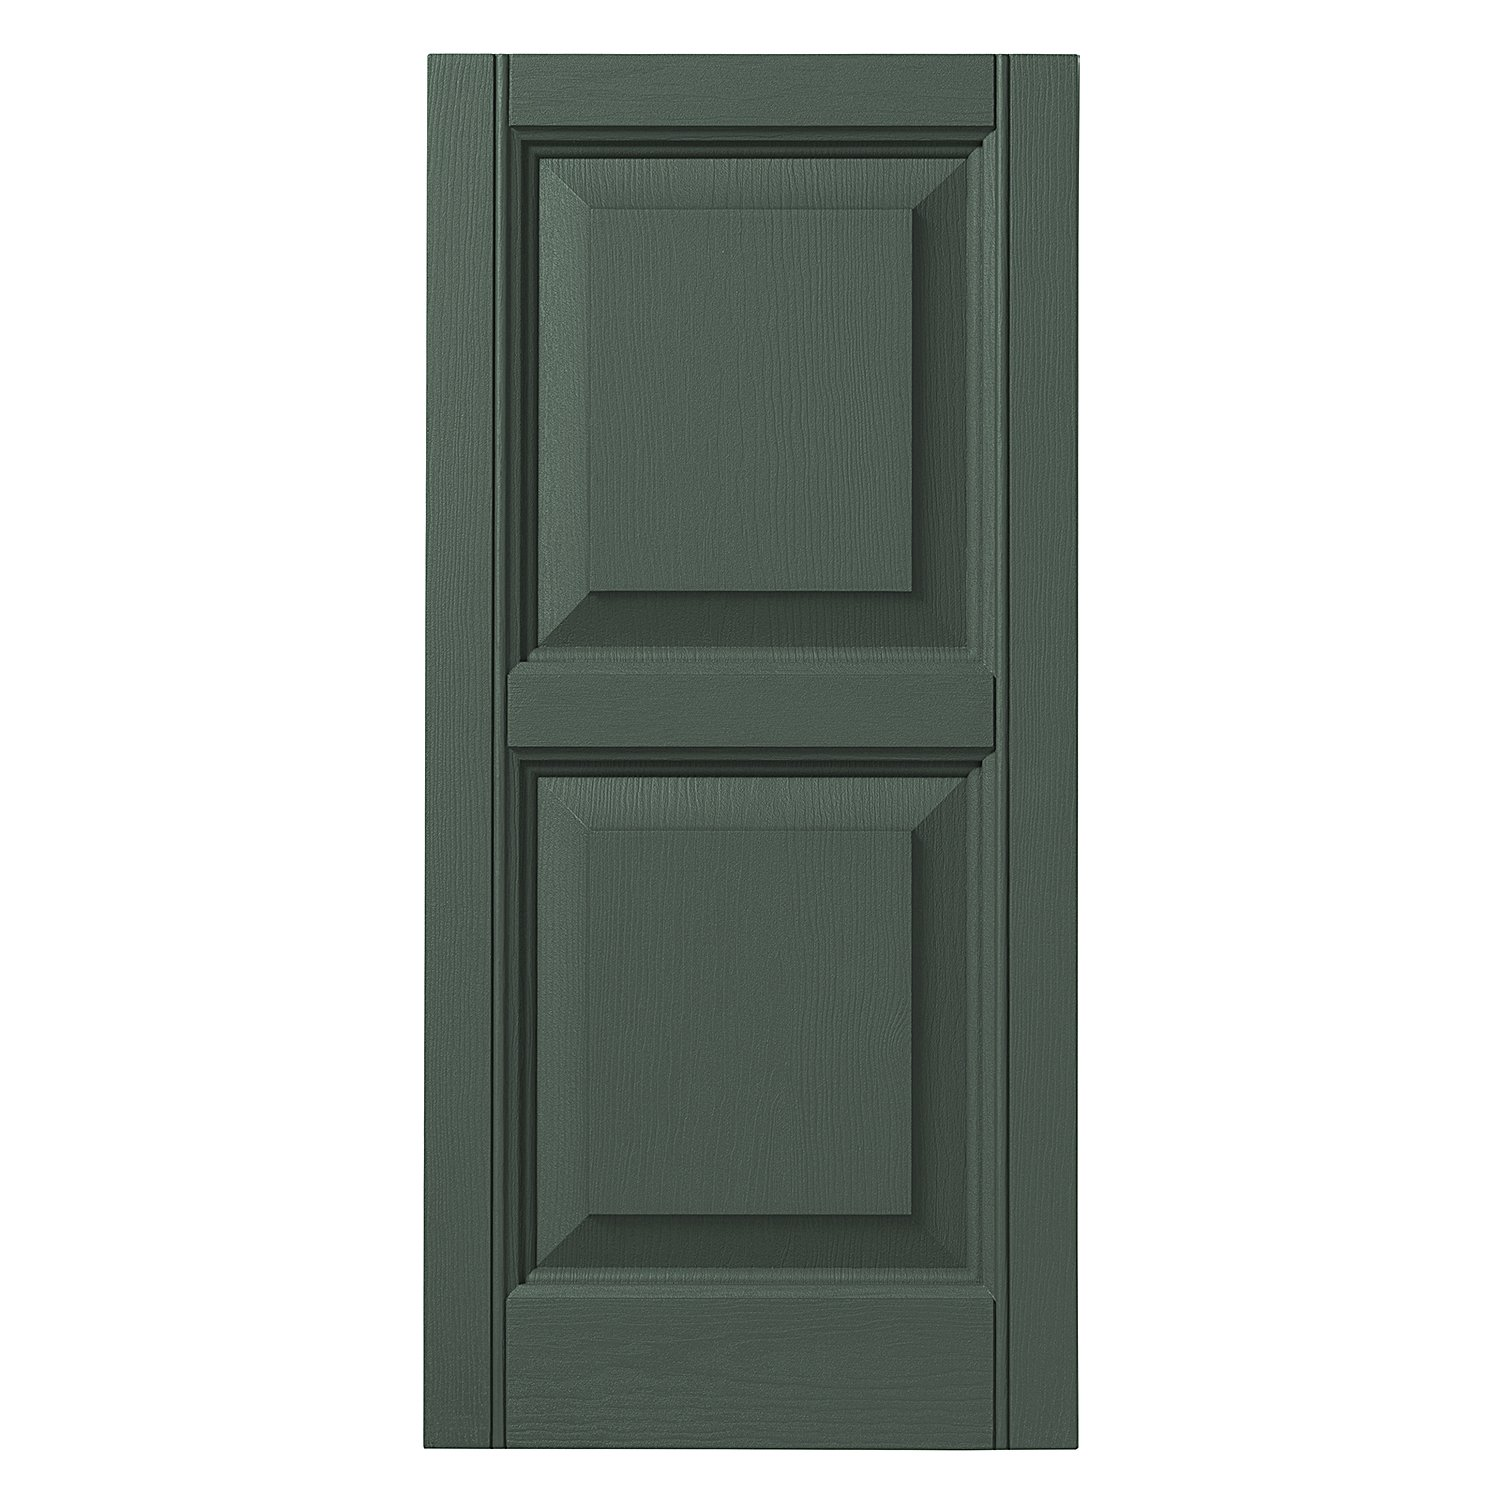 Ply Gem Shutters and Accents VINRP1243 55 Raised Panel Shutter, 12'', Green